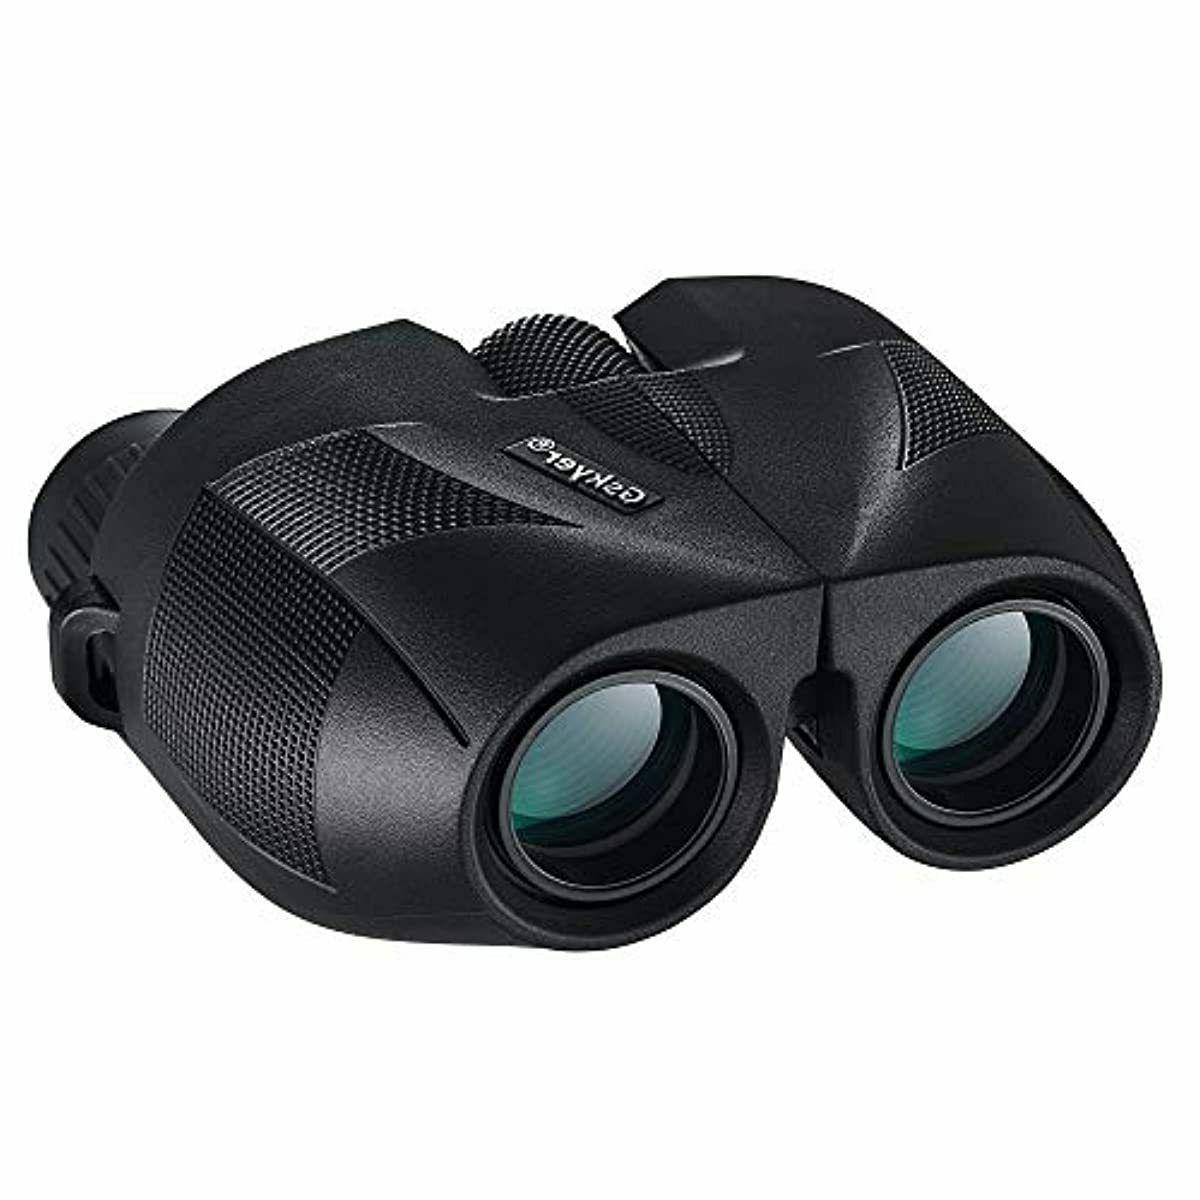 binoculars binoculars for adults binoculars for bird